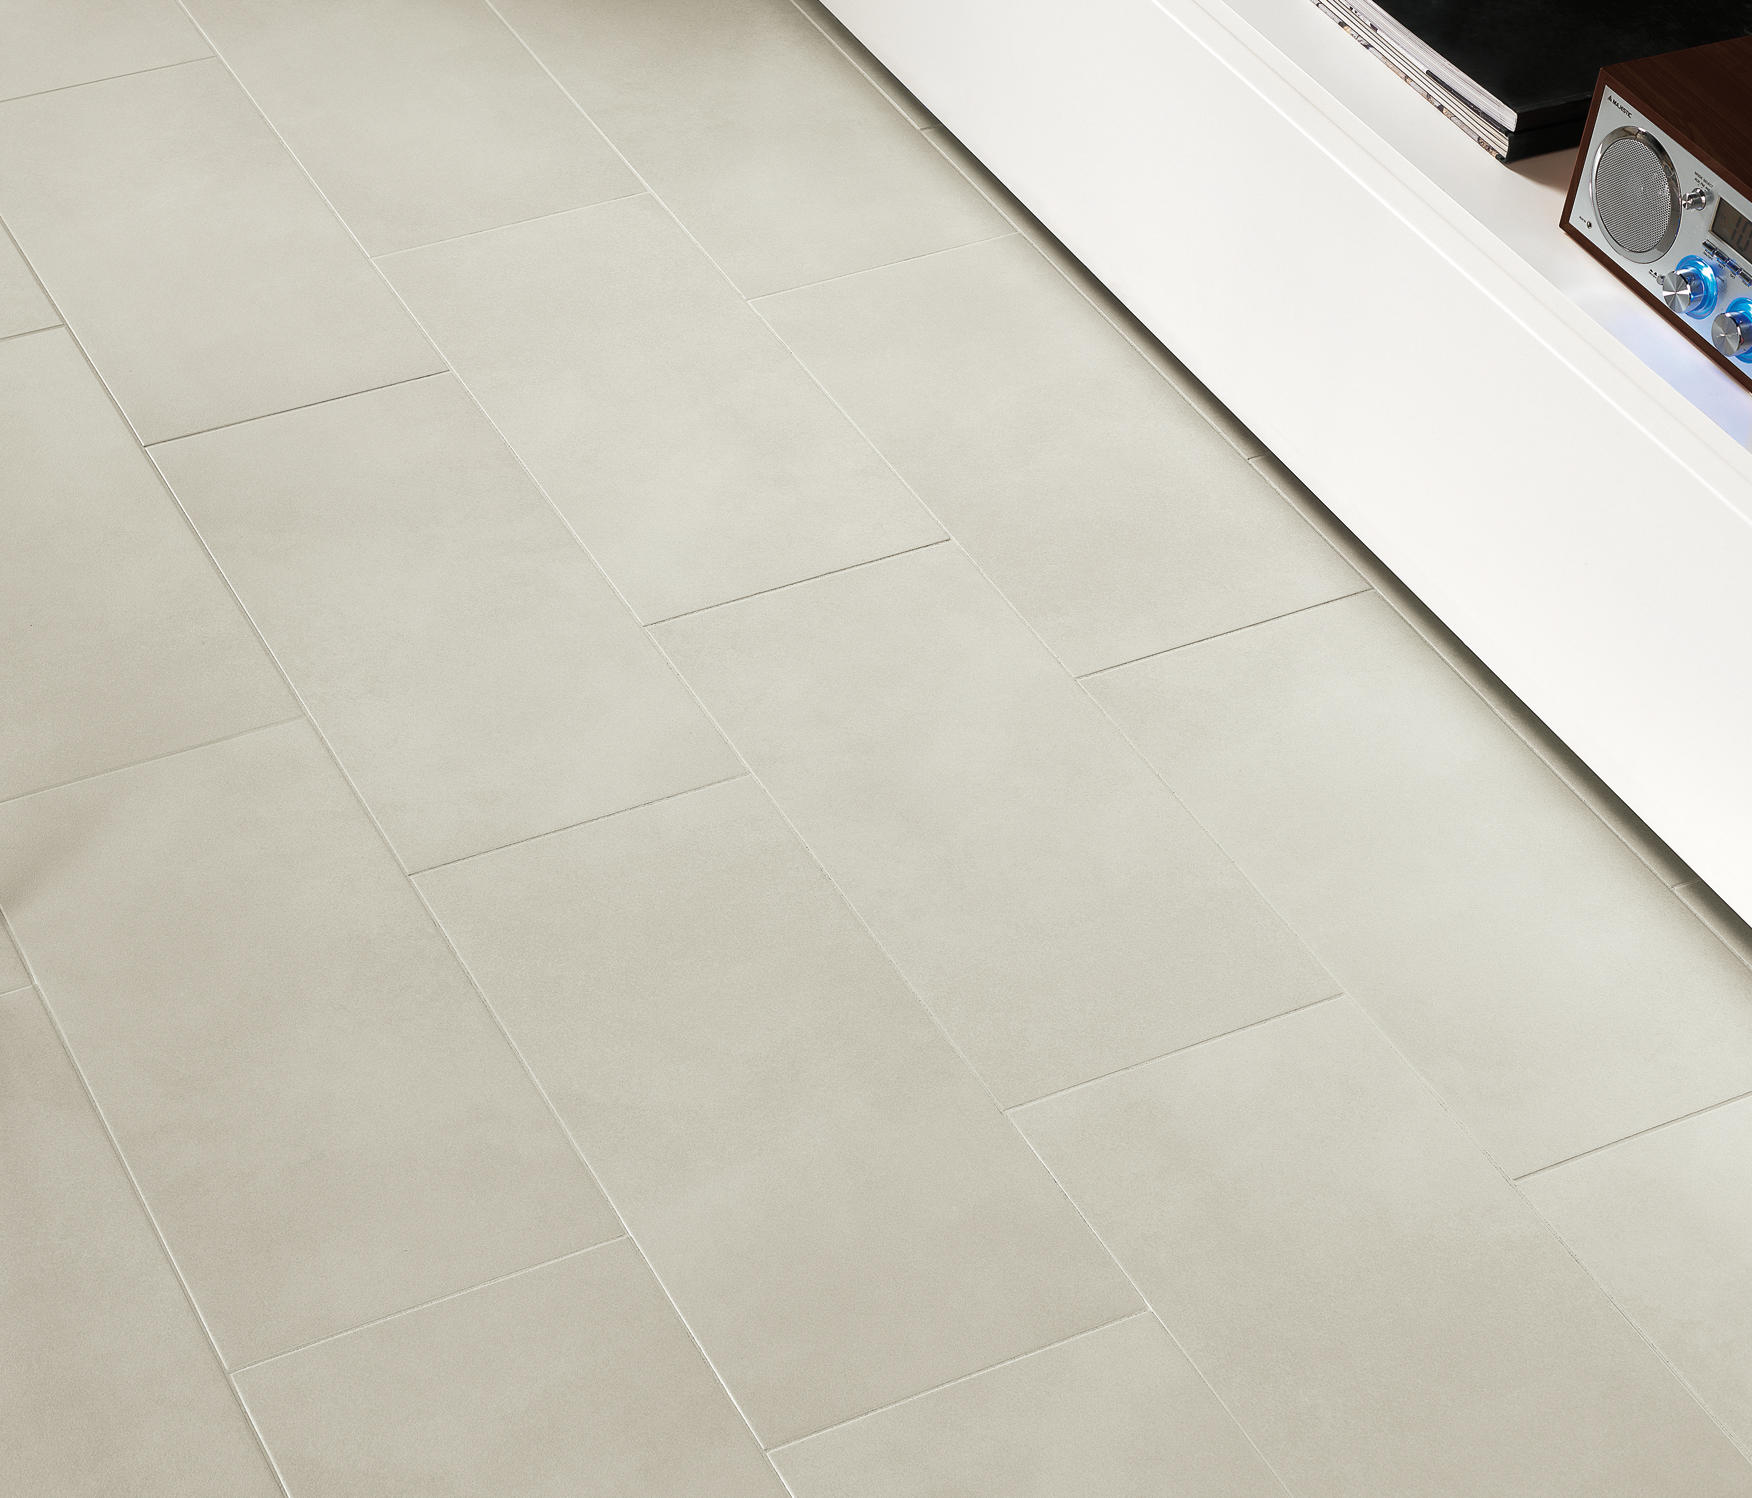 Ccs Lithos Ceramic Tiles From Caesar Architonic